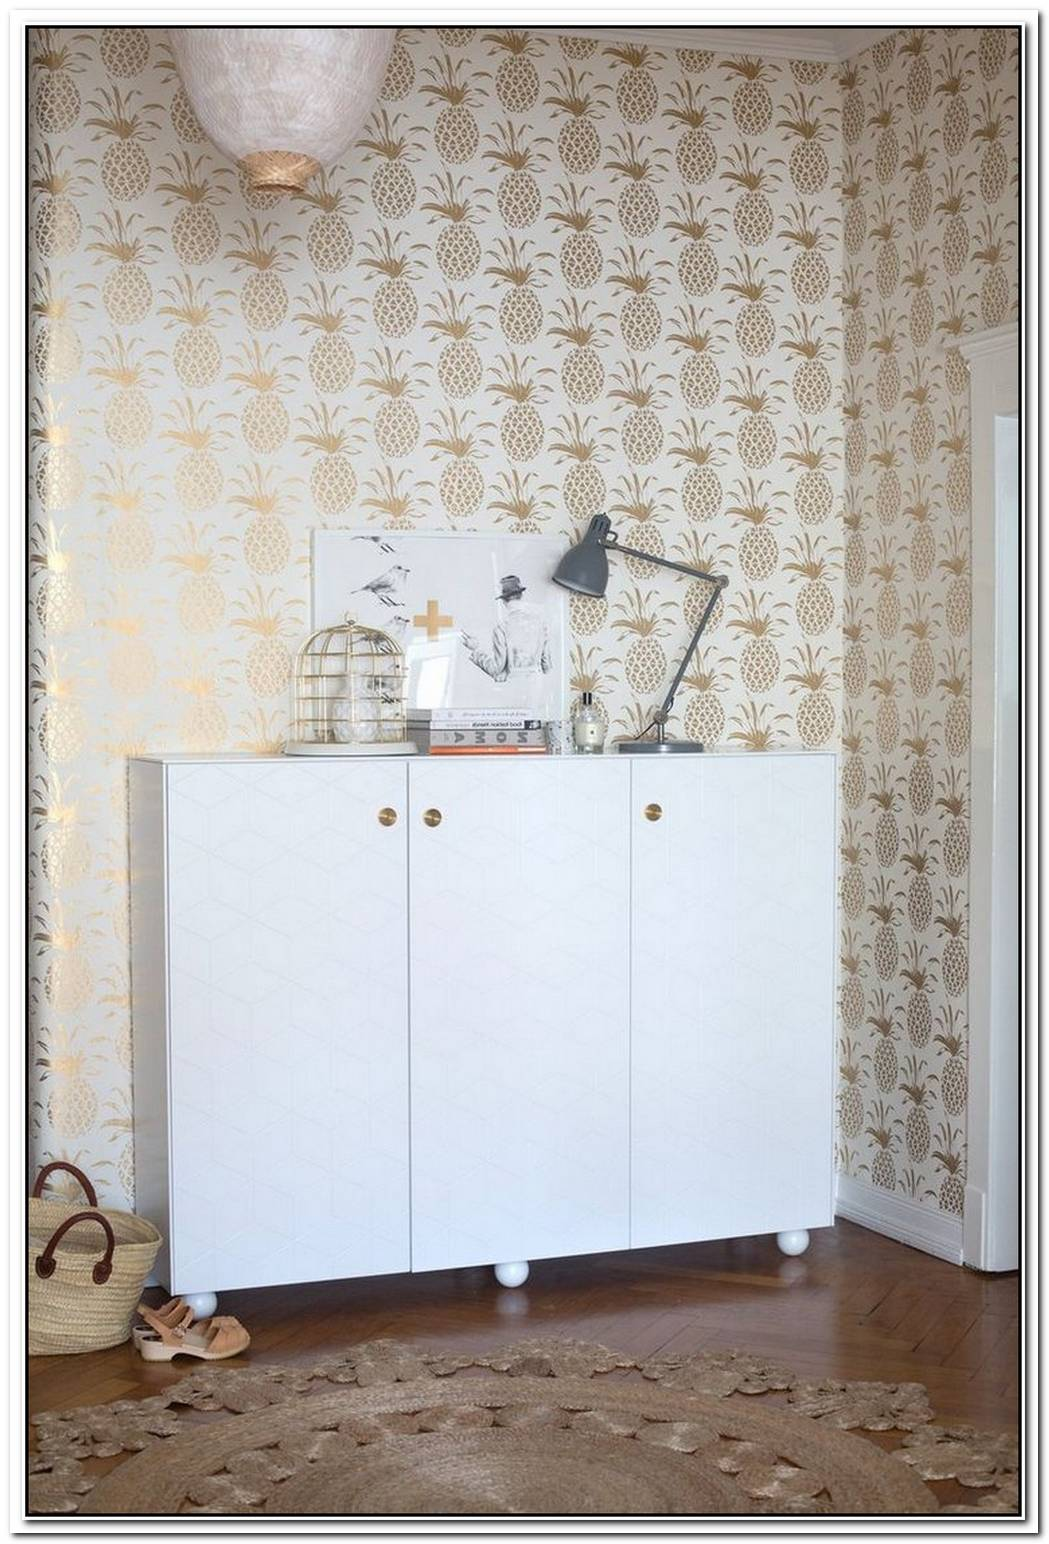 17 Patterned Wallpapers To Make Your Walls Pop